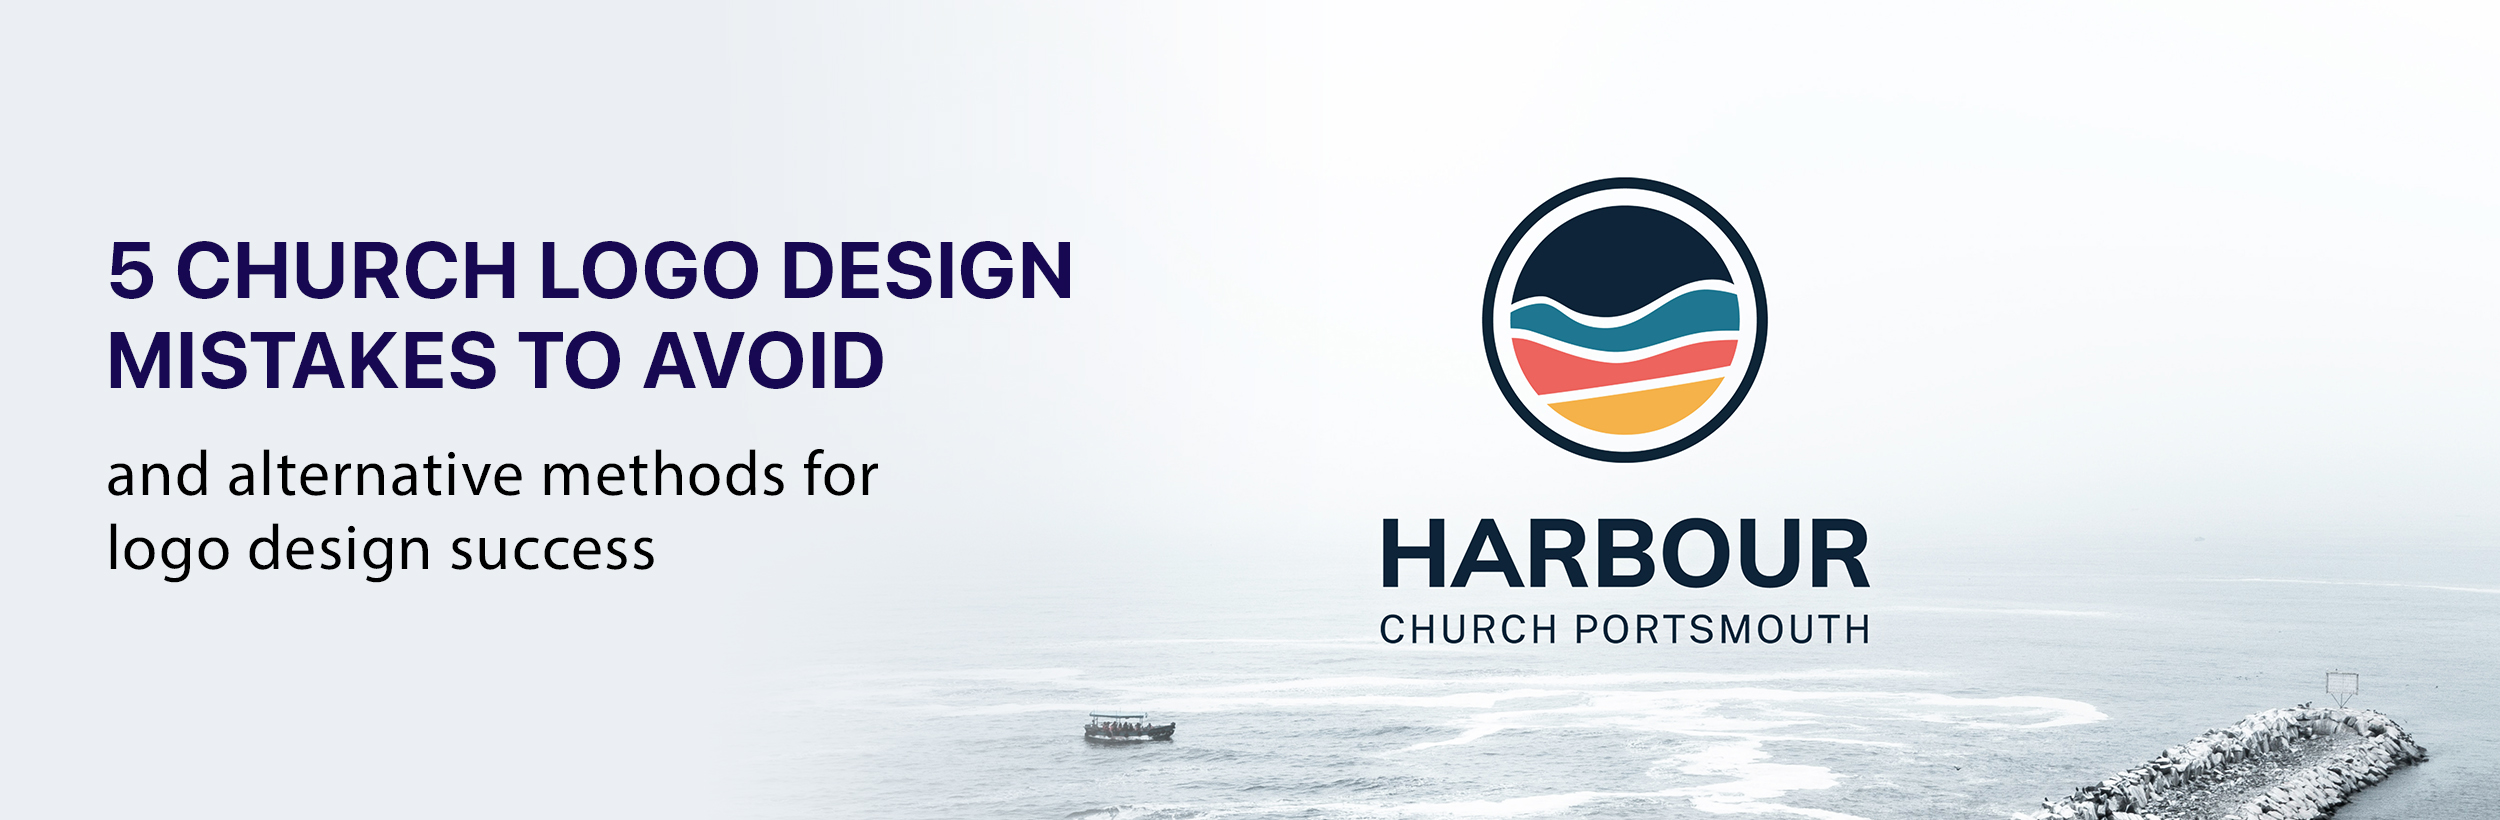 5 Church Logo Design Mistakes | Clear Design